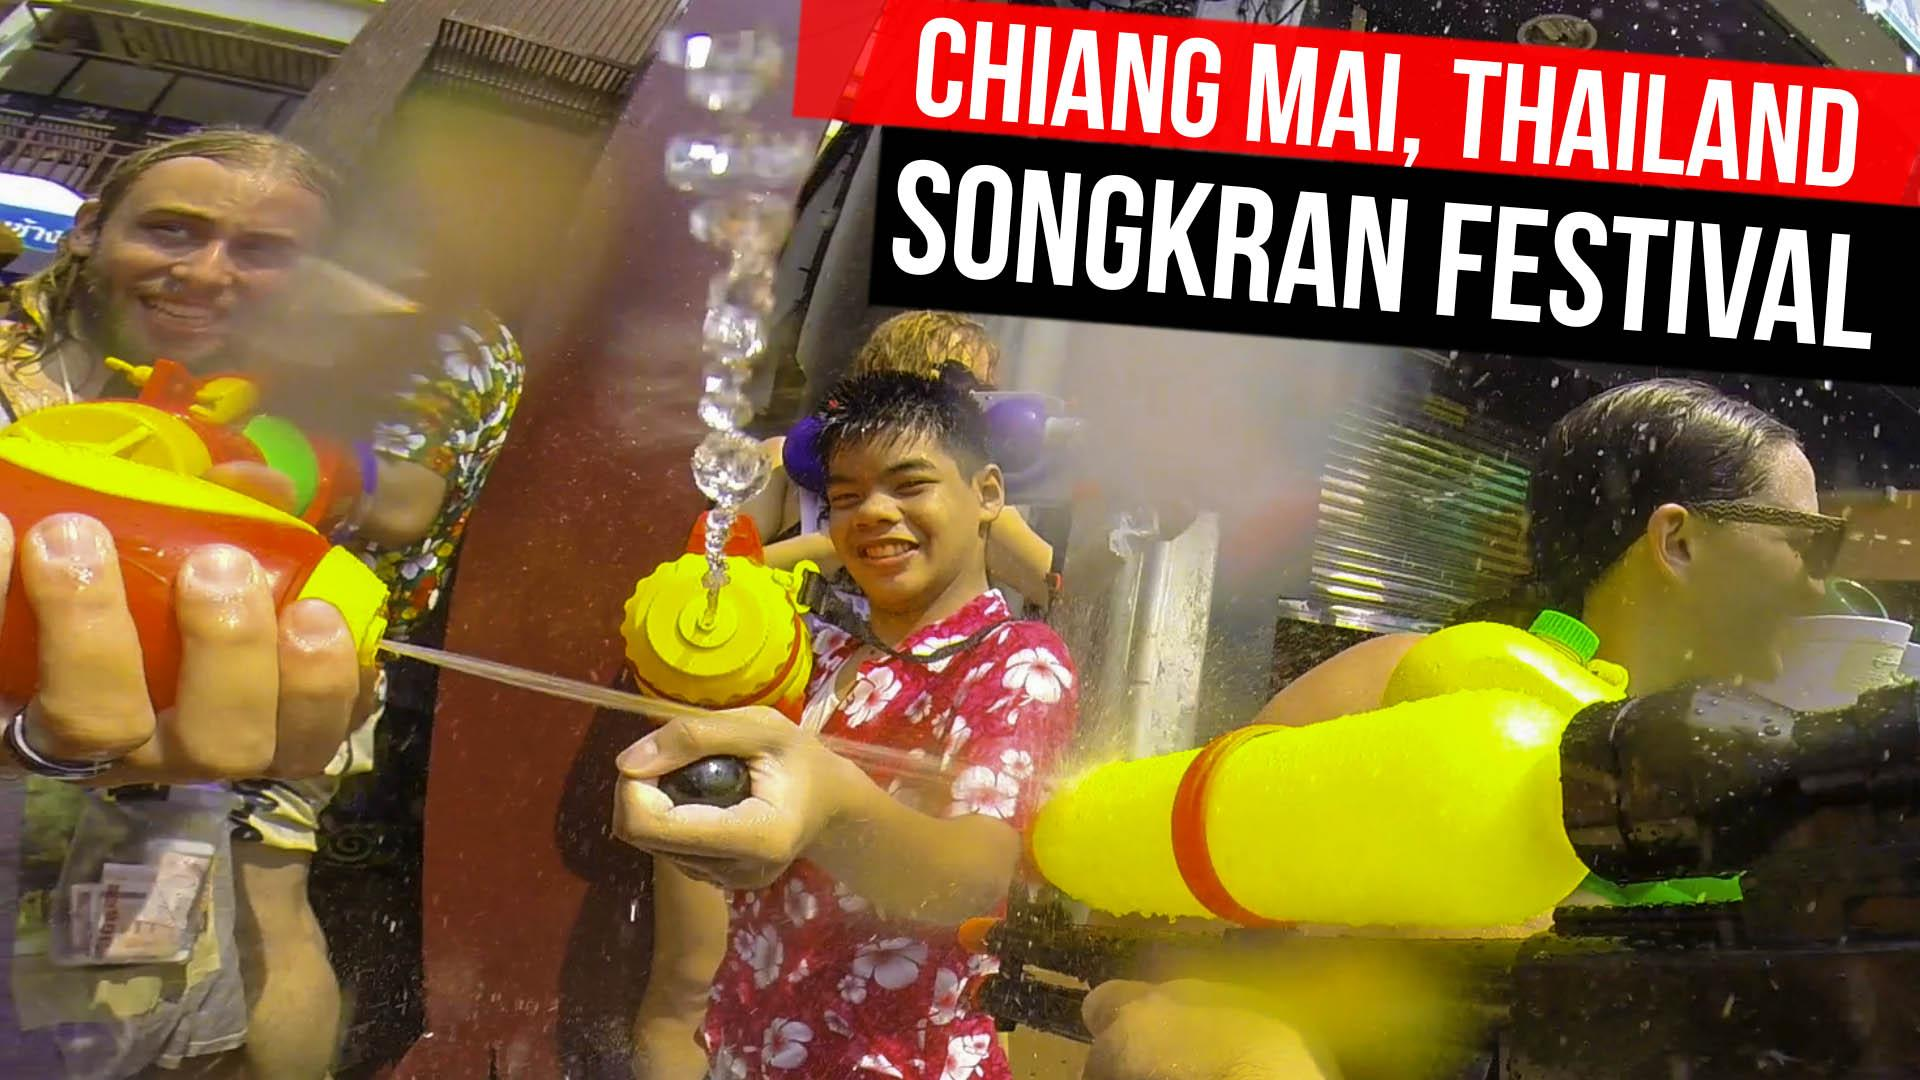 Songkran Festival 2019 Guide and Tips